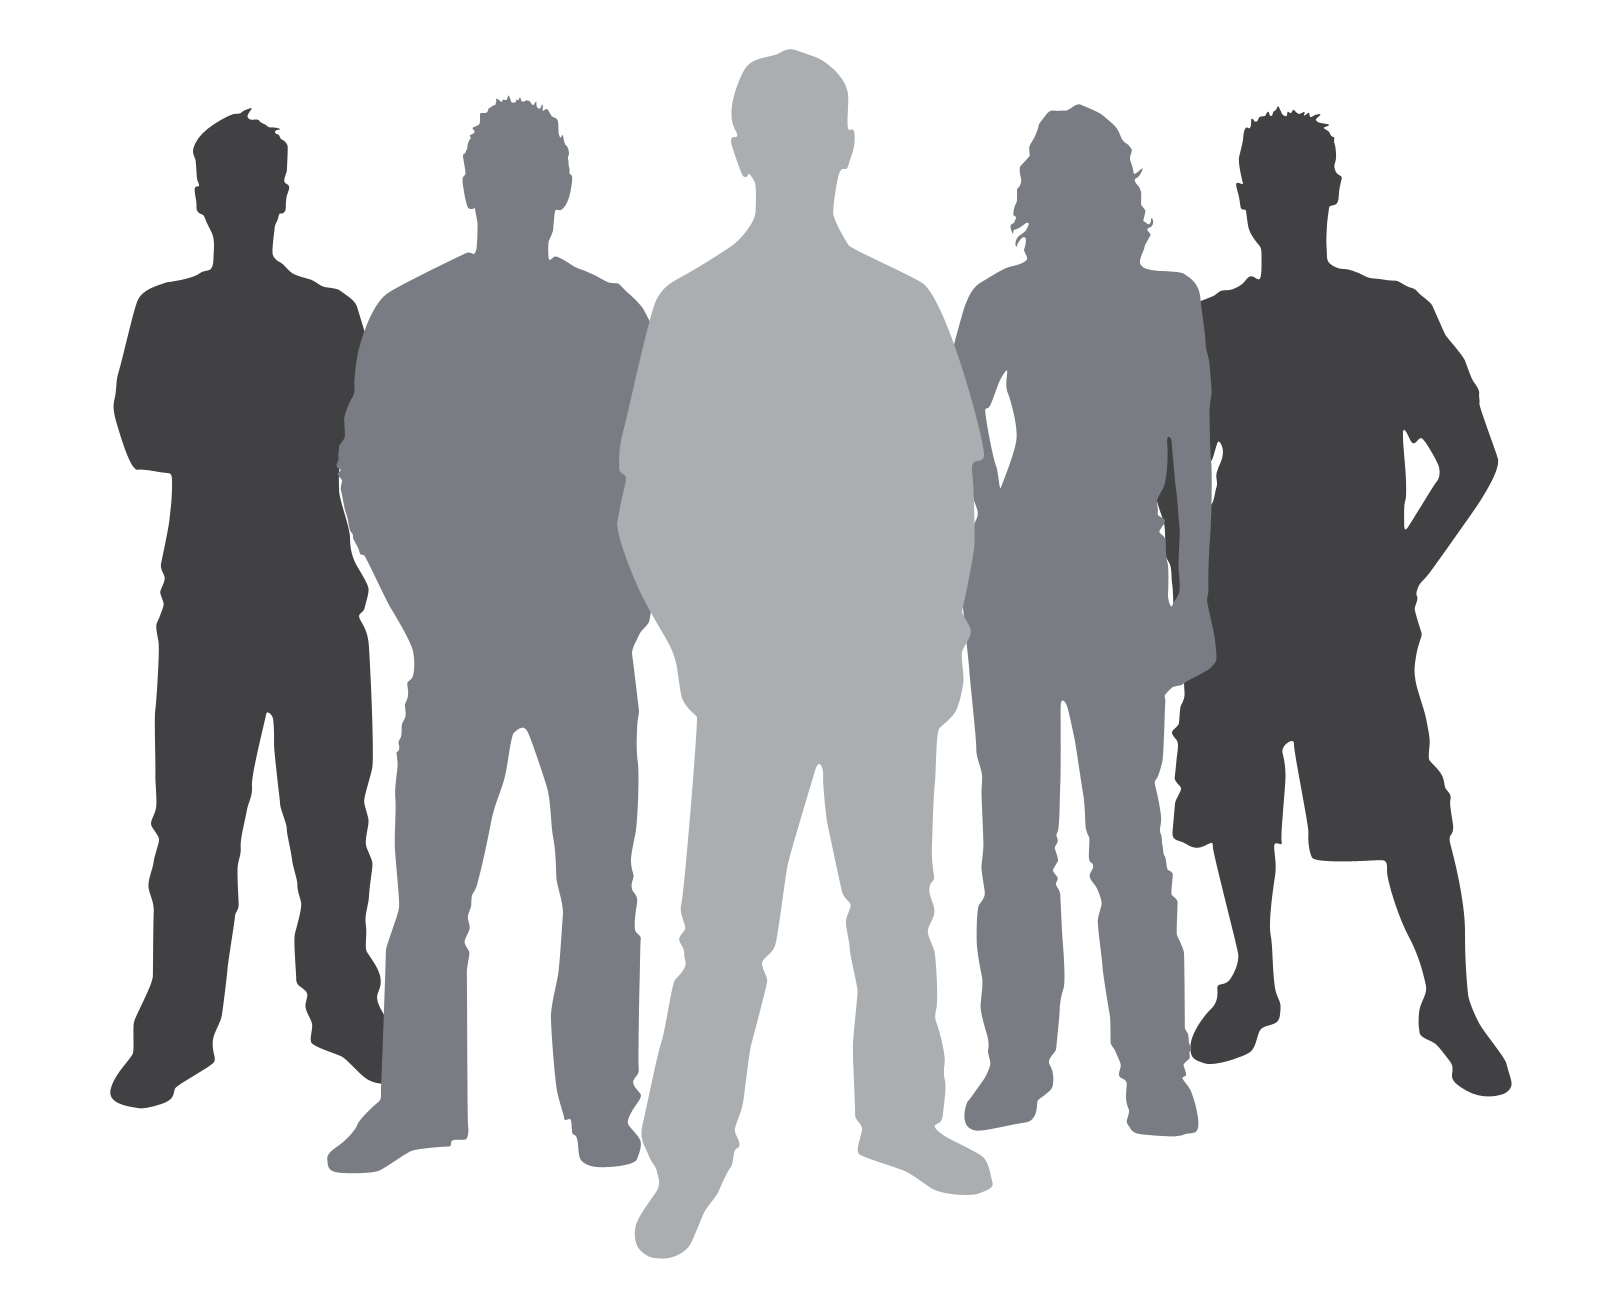 14 Group Of People Silhouette Vector Clip Art Images